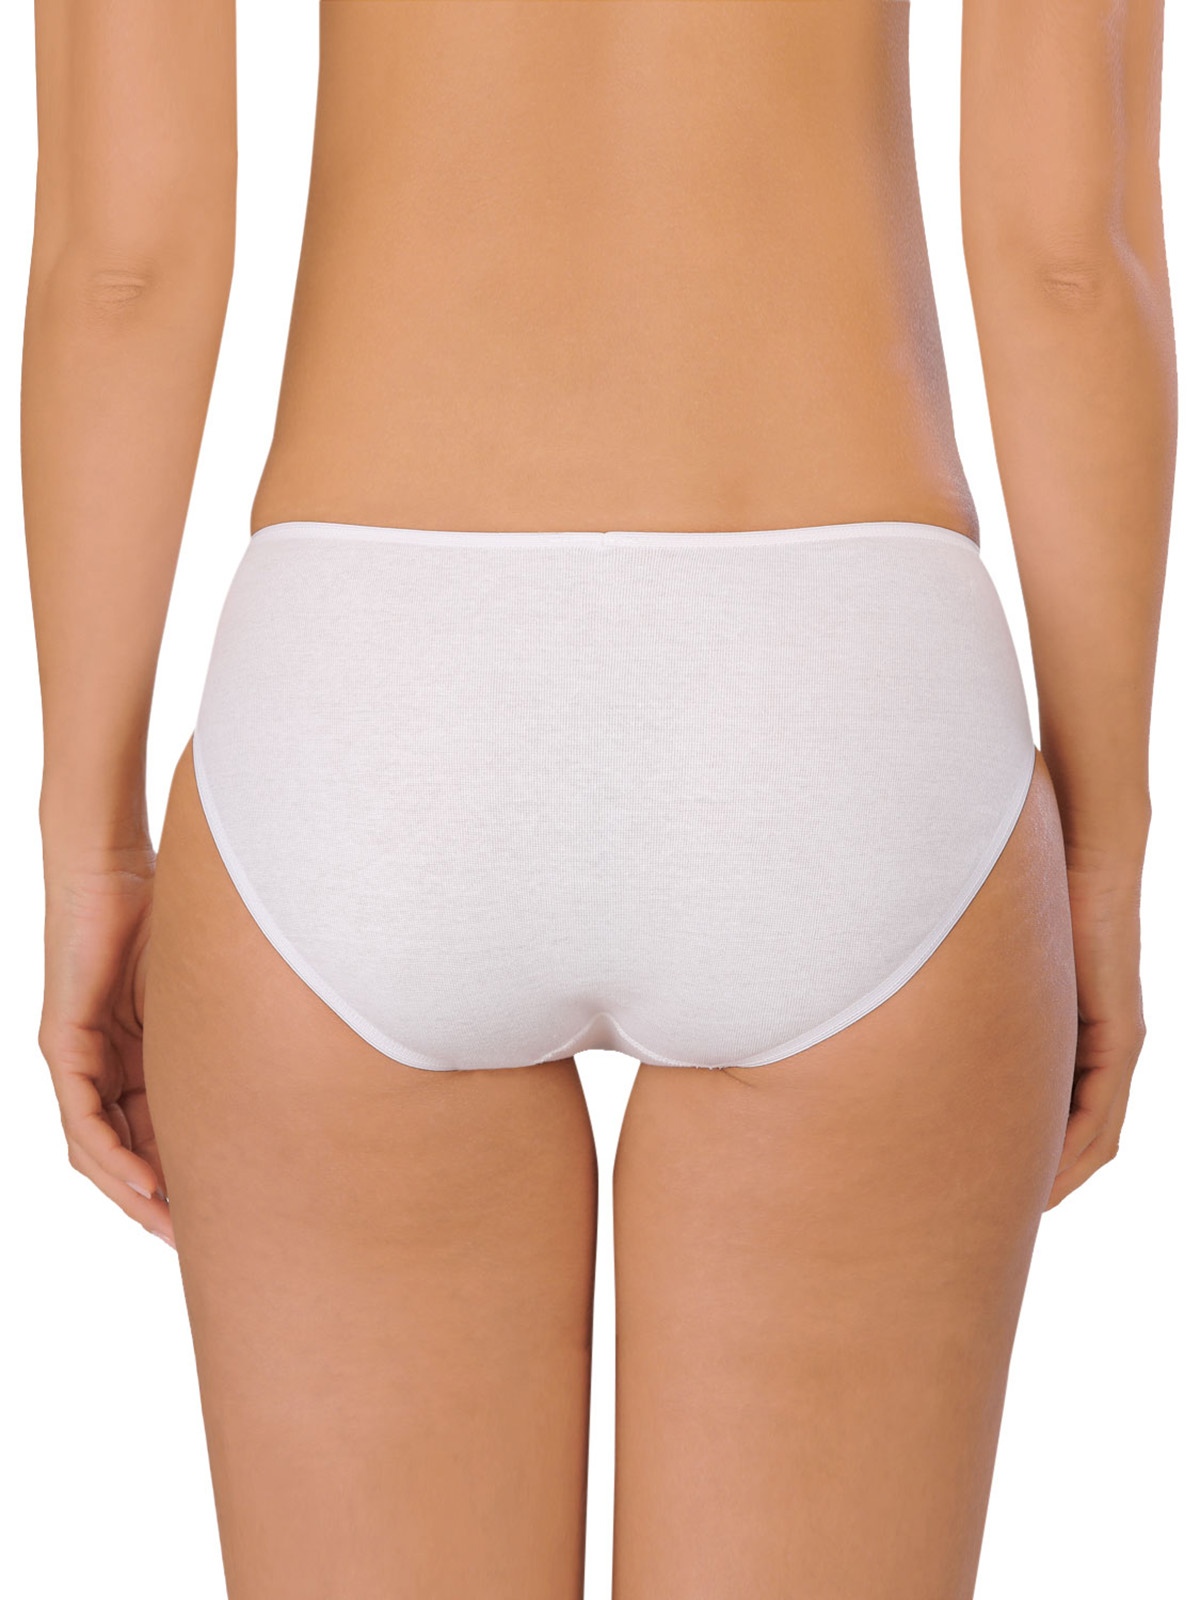 Naturana Women's Mini Briefs 2101